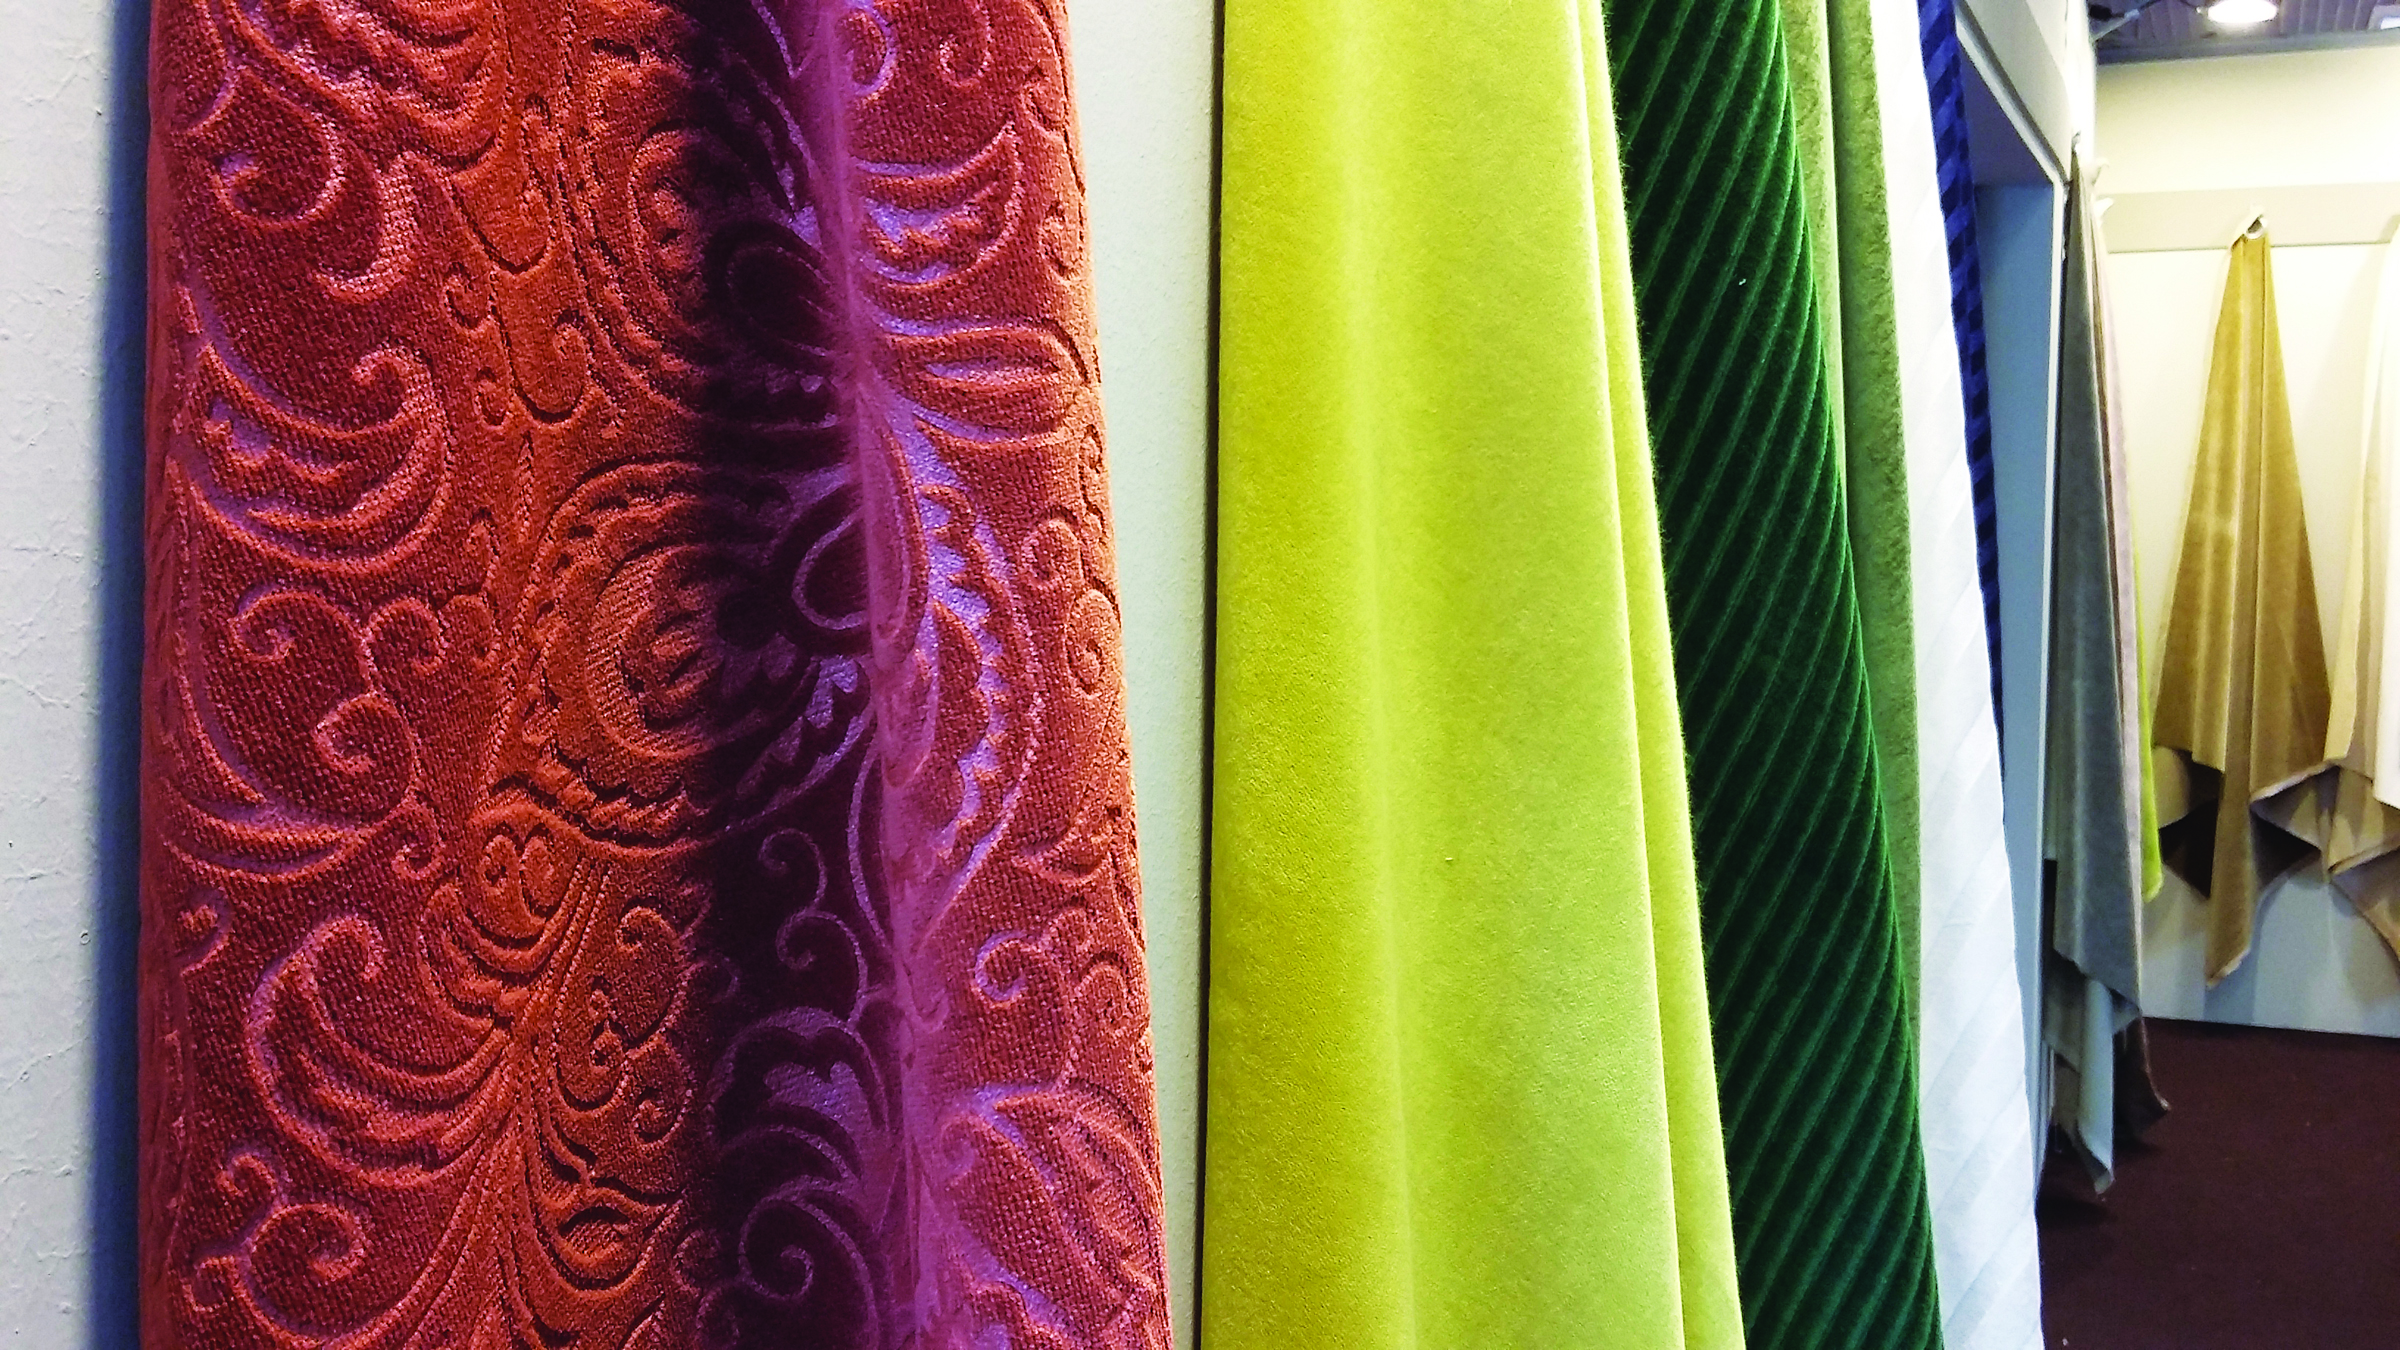 JB MARTIN CO.: Velvets at JB Martin include warm hues, indoor/outdoor and digitally printed velvets.